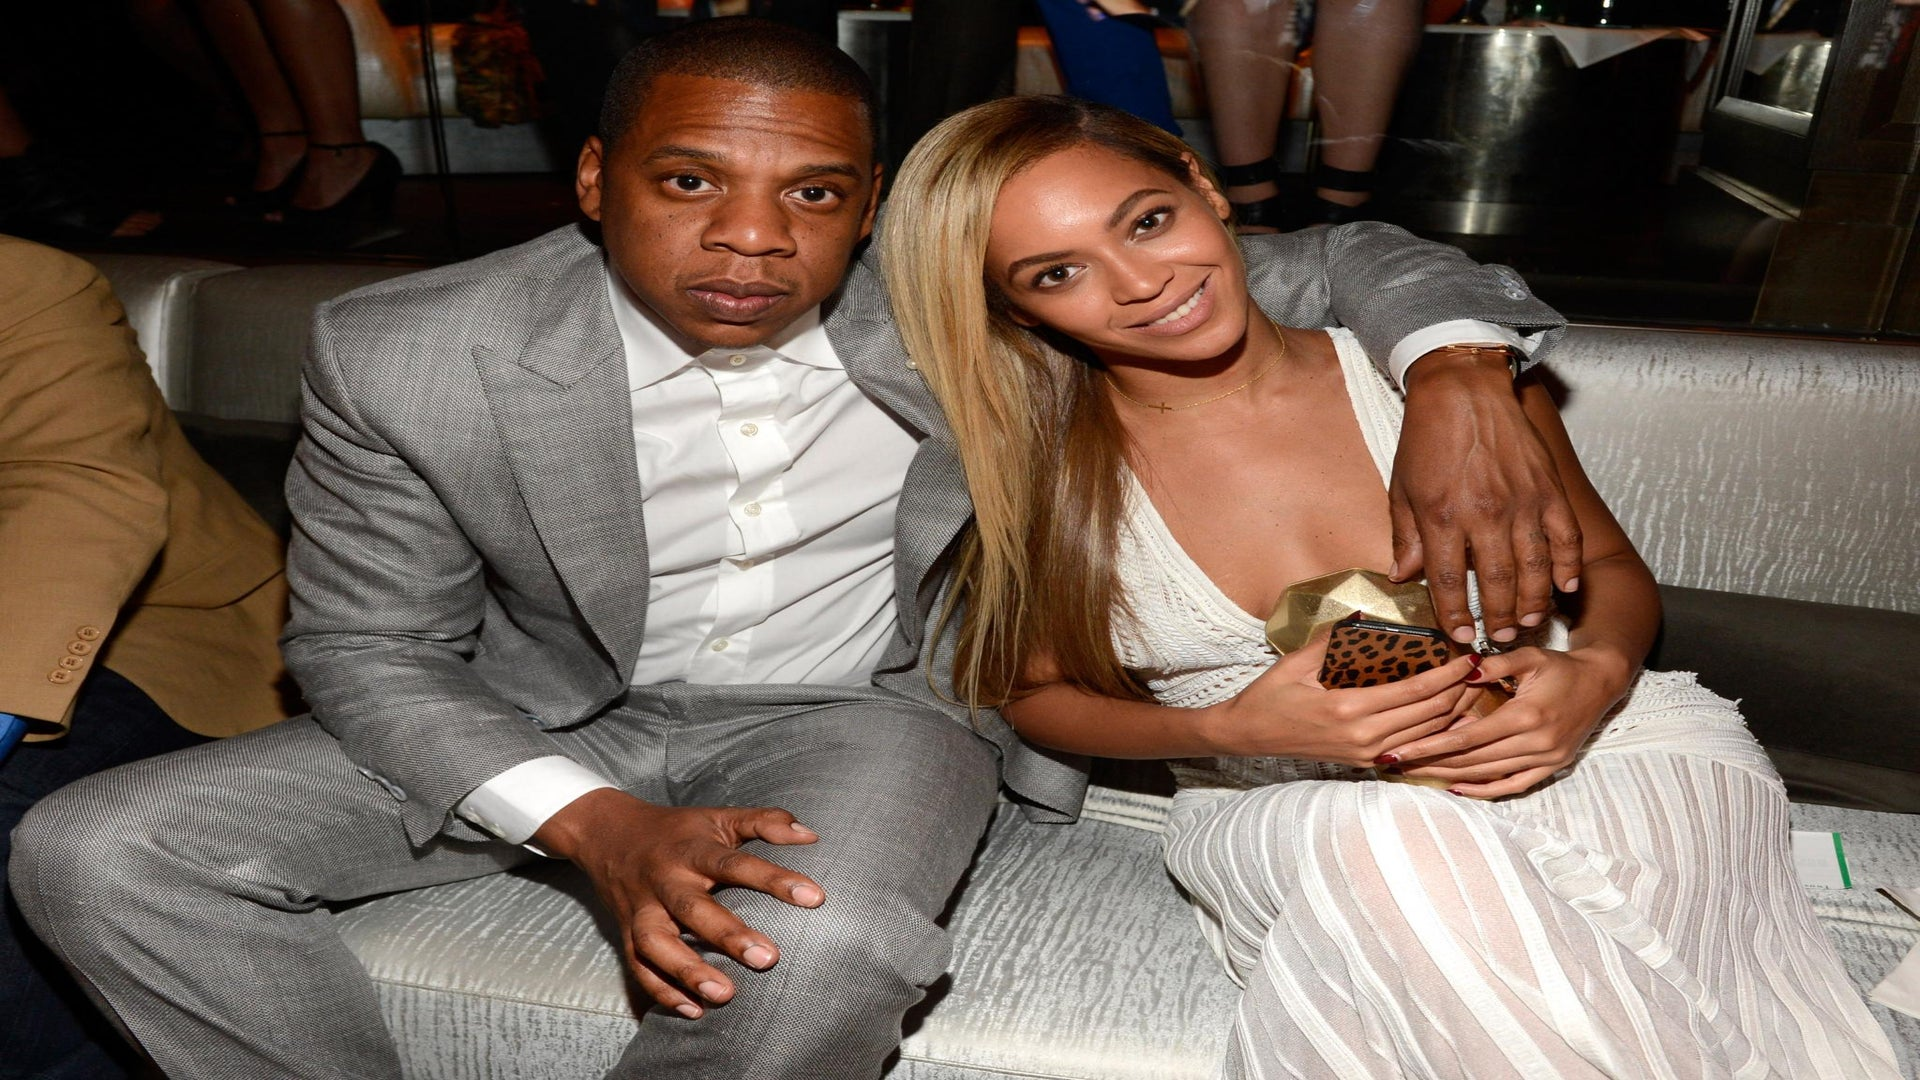 JAY-Z Speaks Candidly About His Marriage To Beyoncé: 'It's The Hardest Thing I've Ever Done'